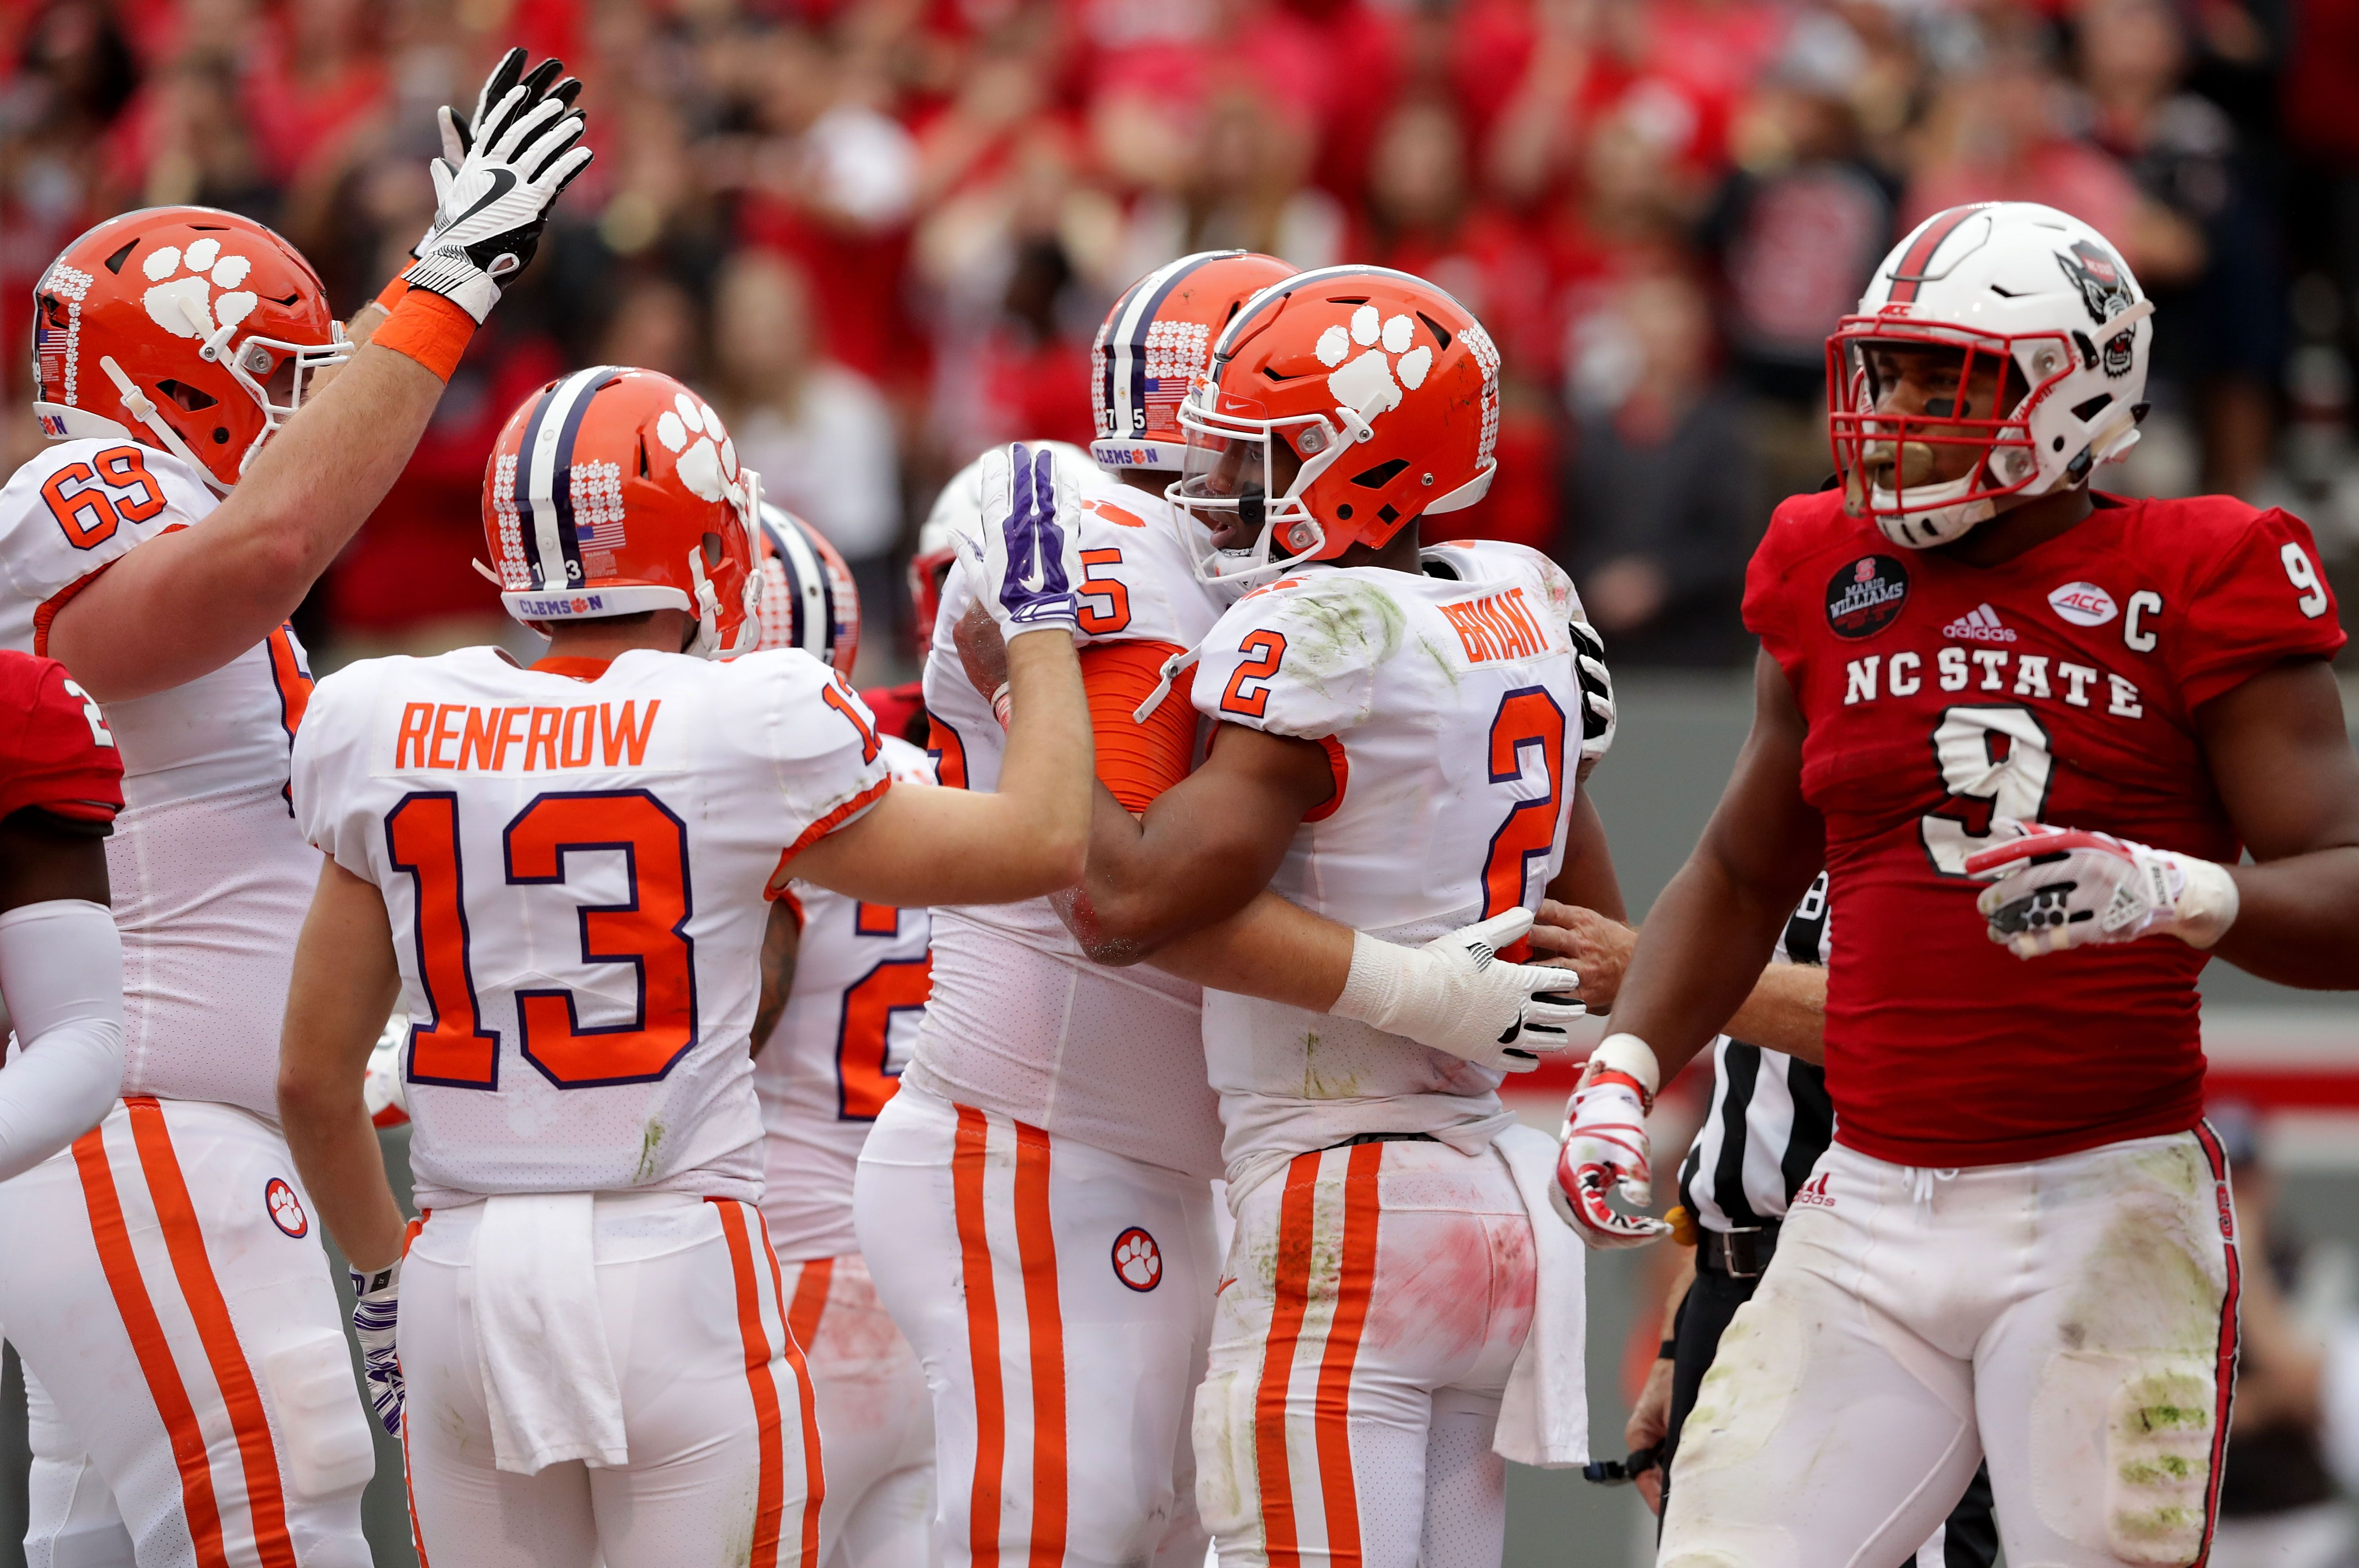 Clemson Football: NC State players and Tiger fans have a little fun